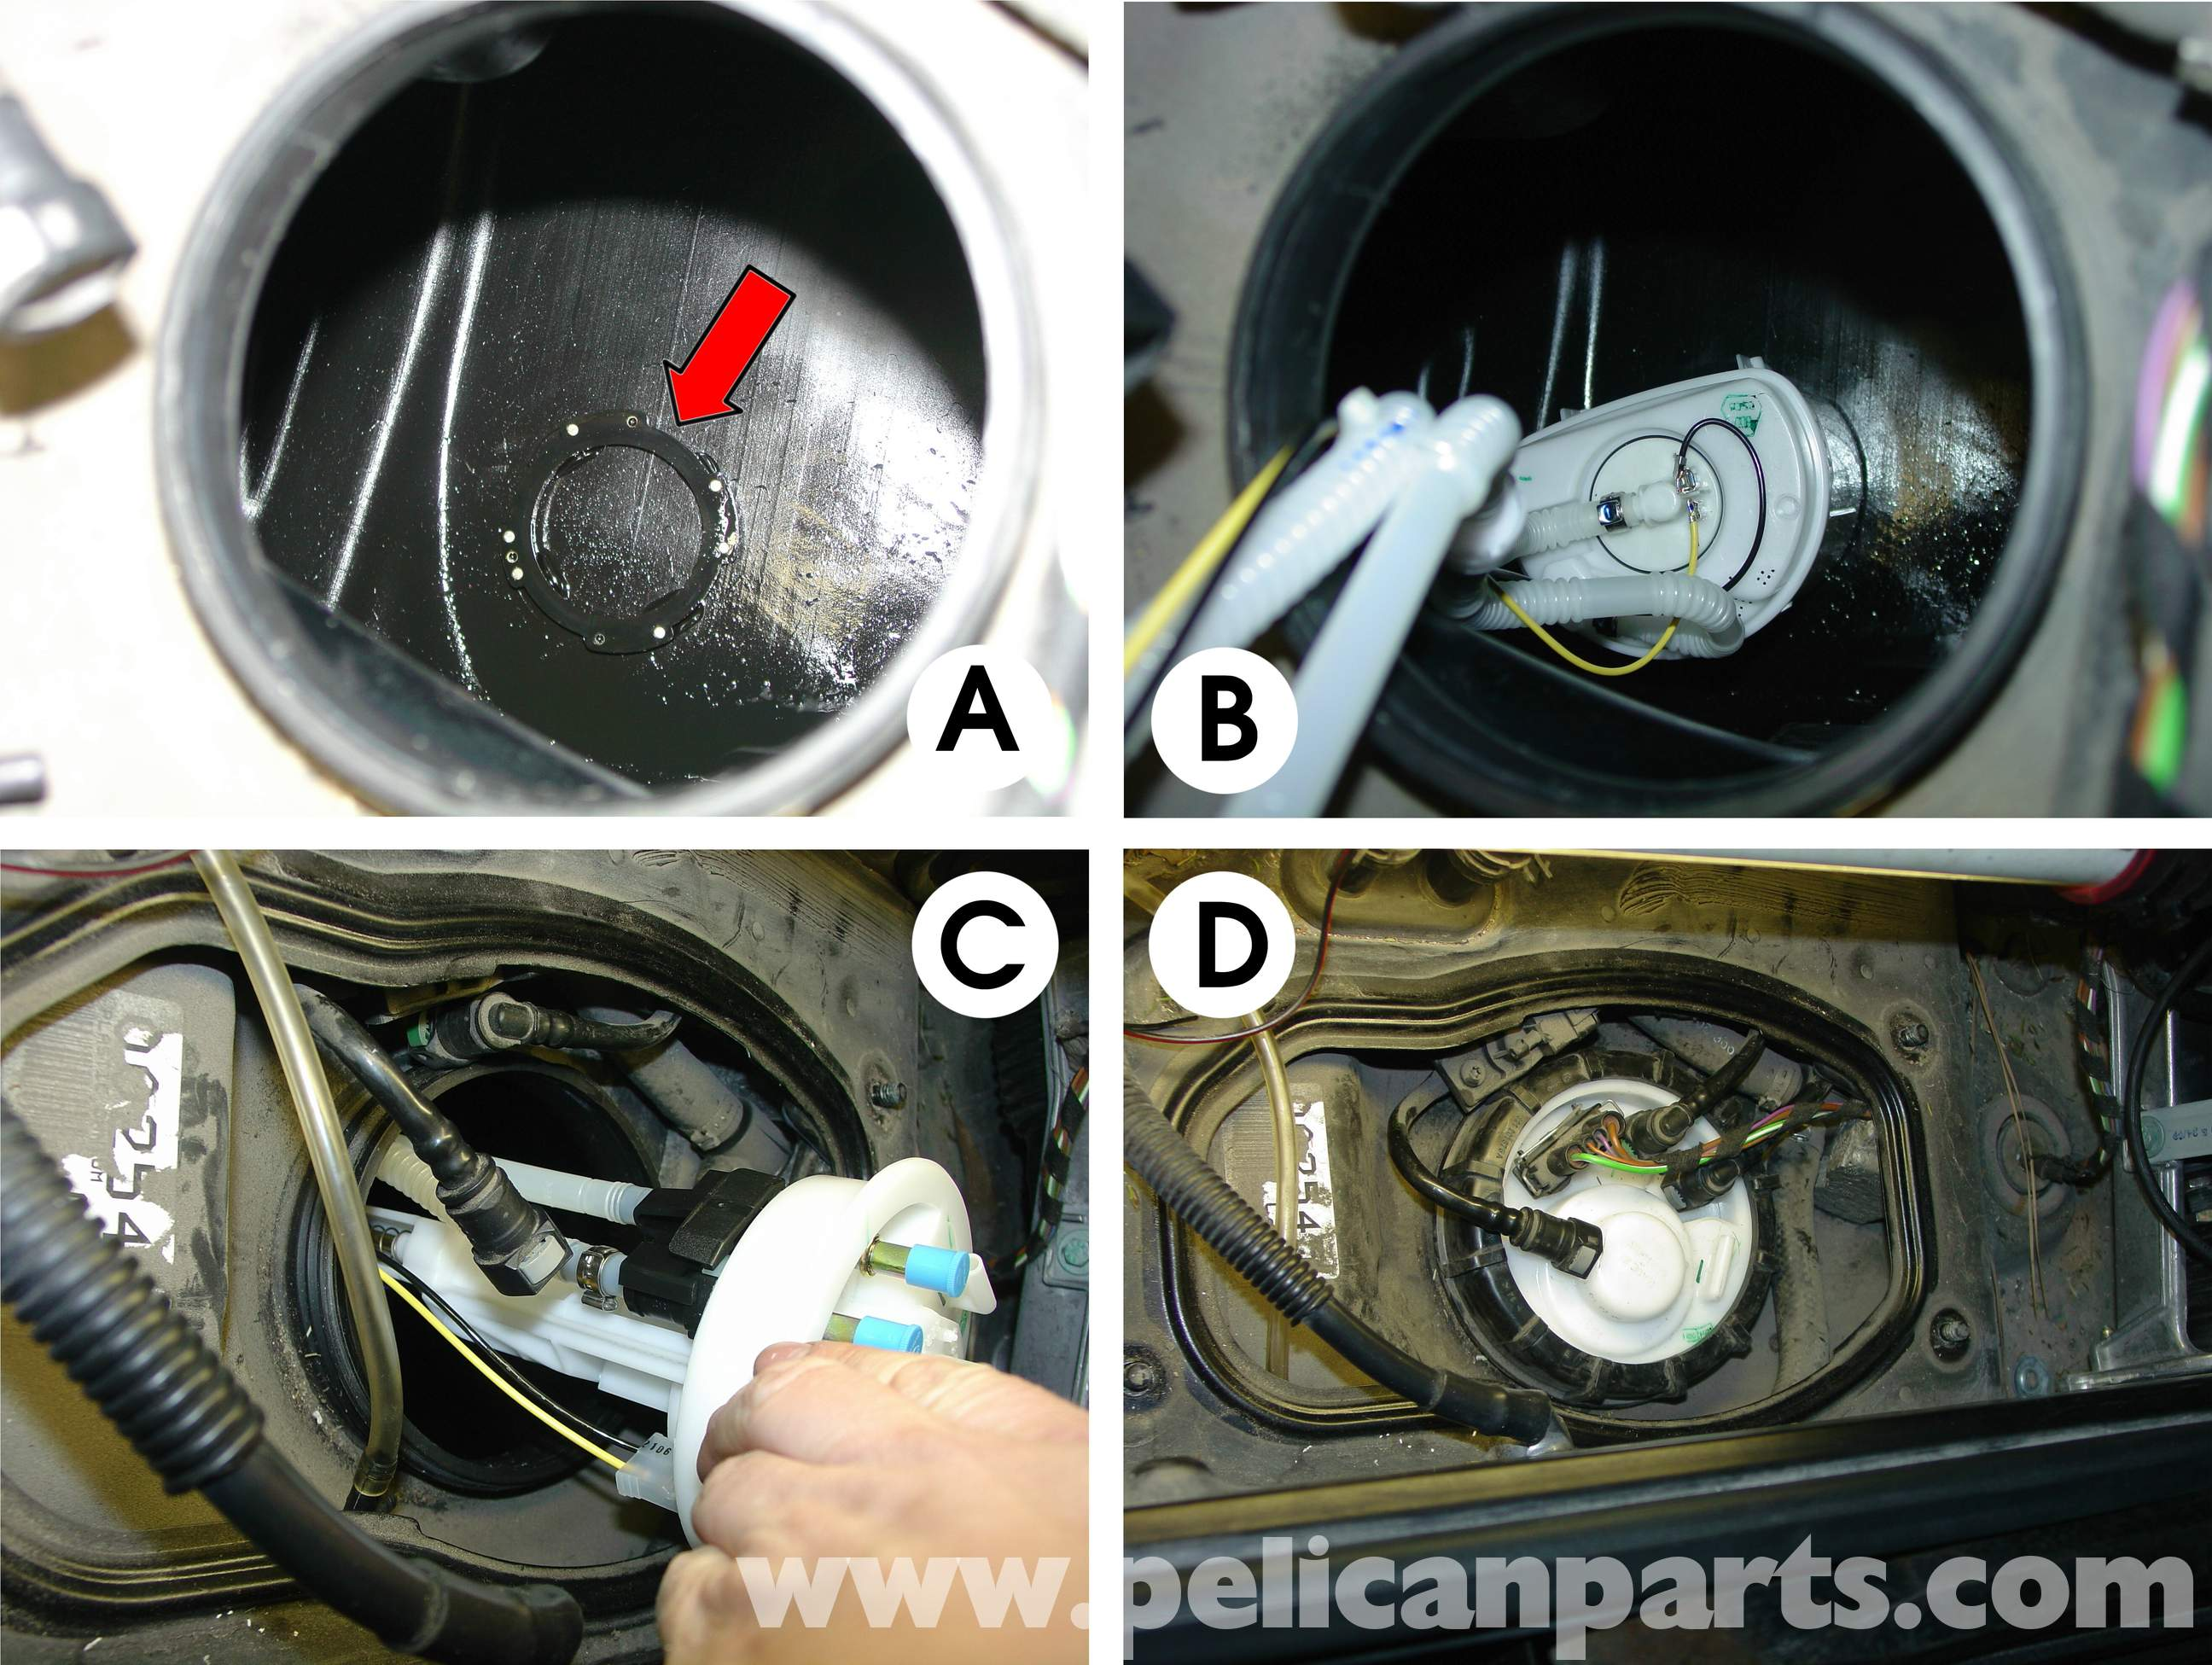 Pelican Technical Article: Boxster Fuel Pump Replacement